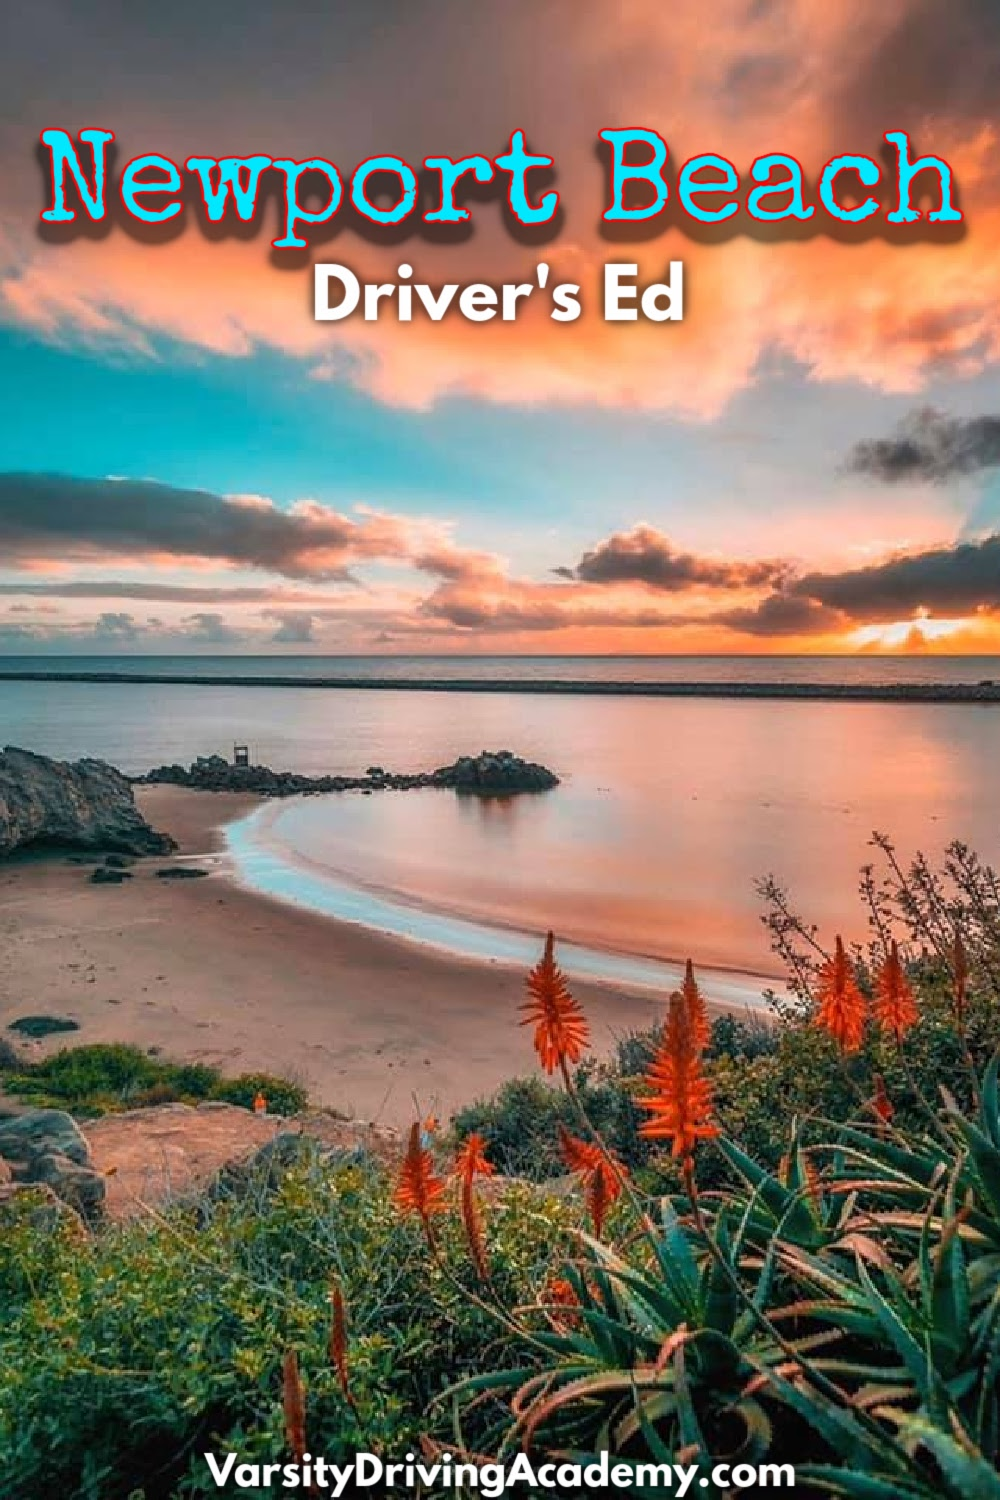 The best Newport Beach drivers ed helps teens and adults learn how to drive defensively to ensure higher odds of remaining safe while driving.